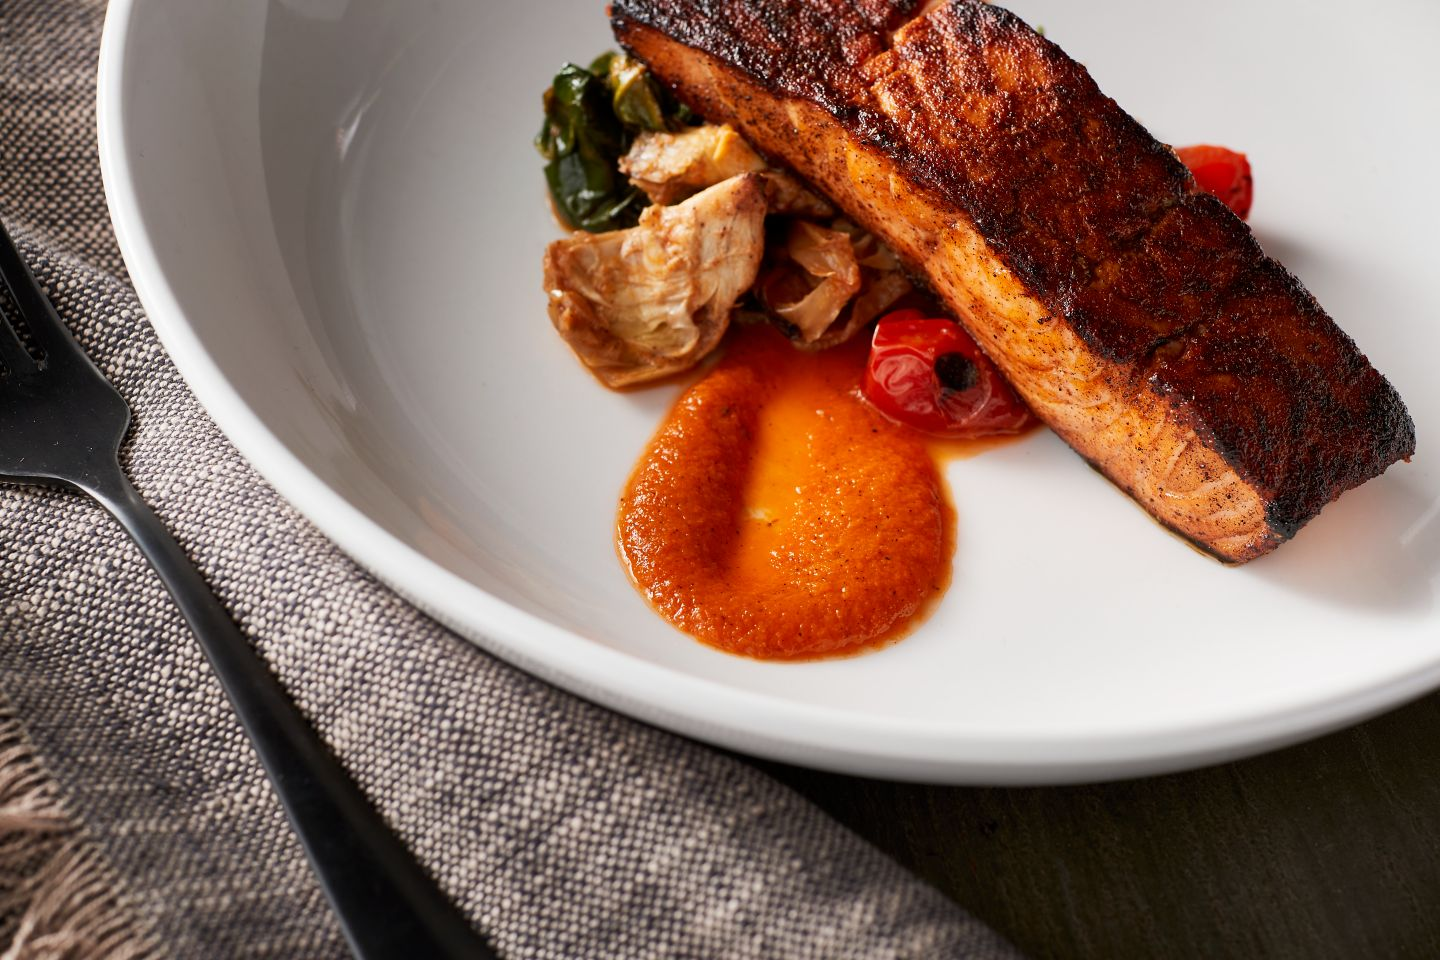 A salmon dish from The Horse & Plow